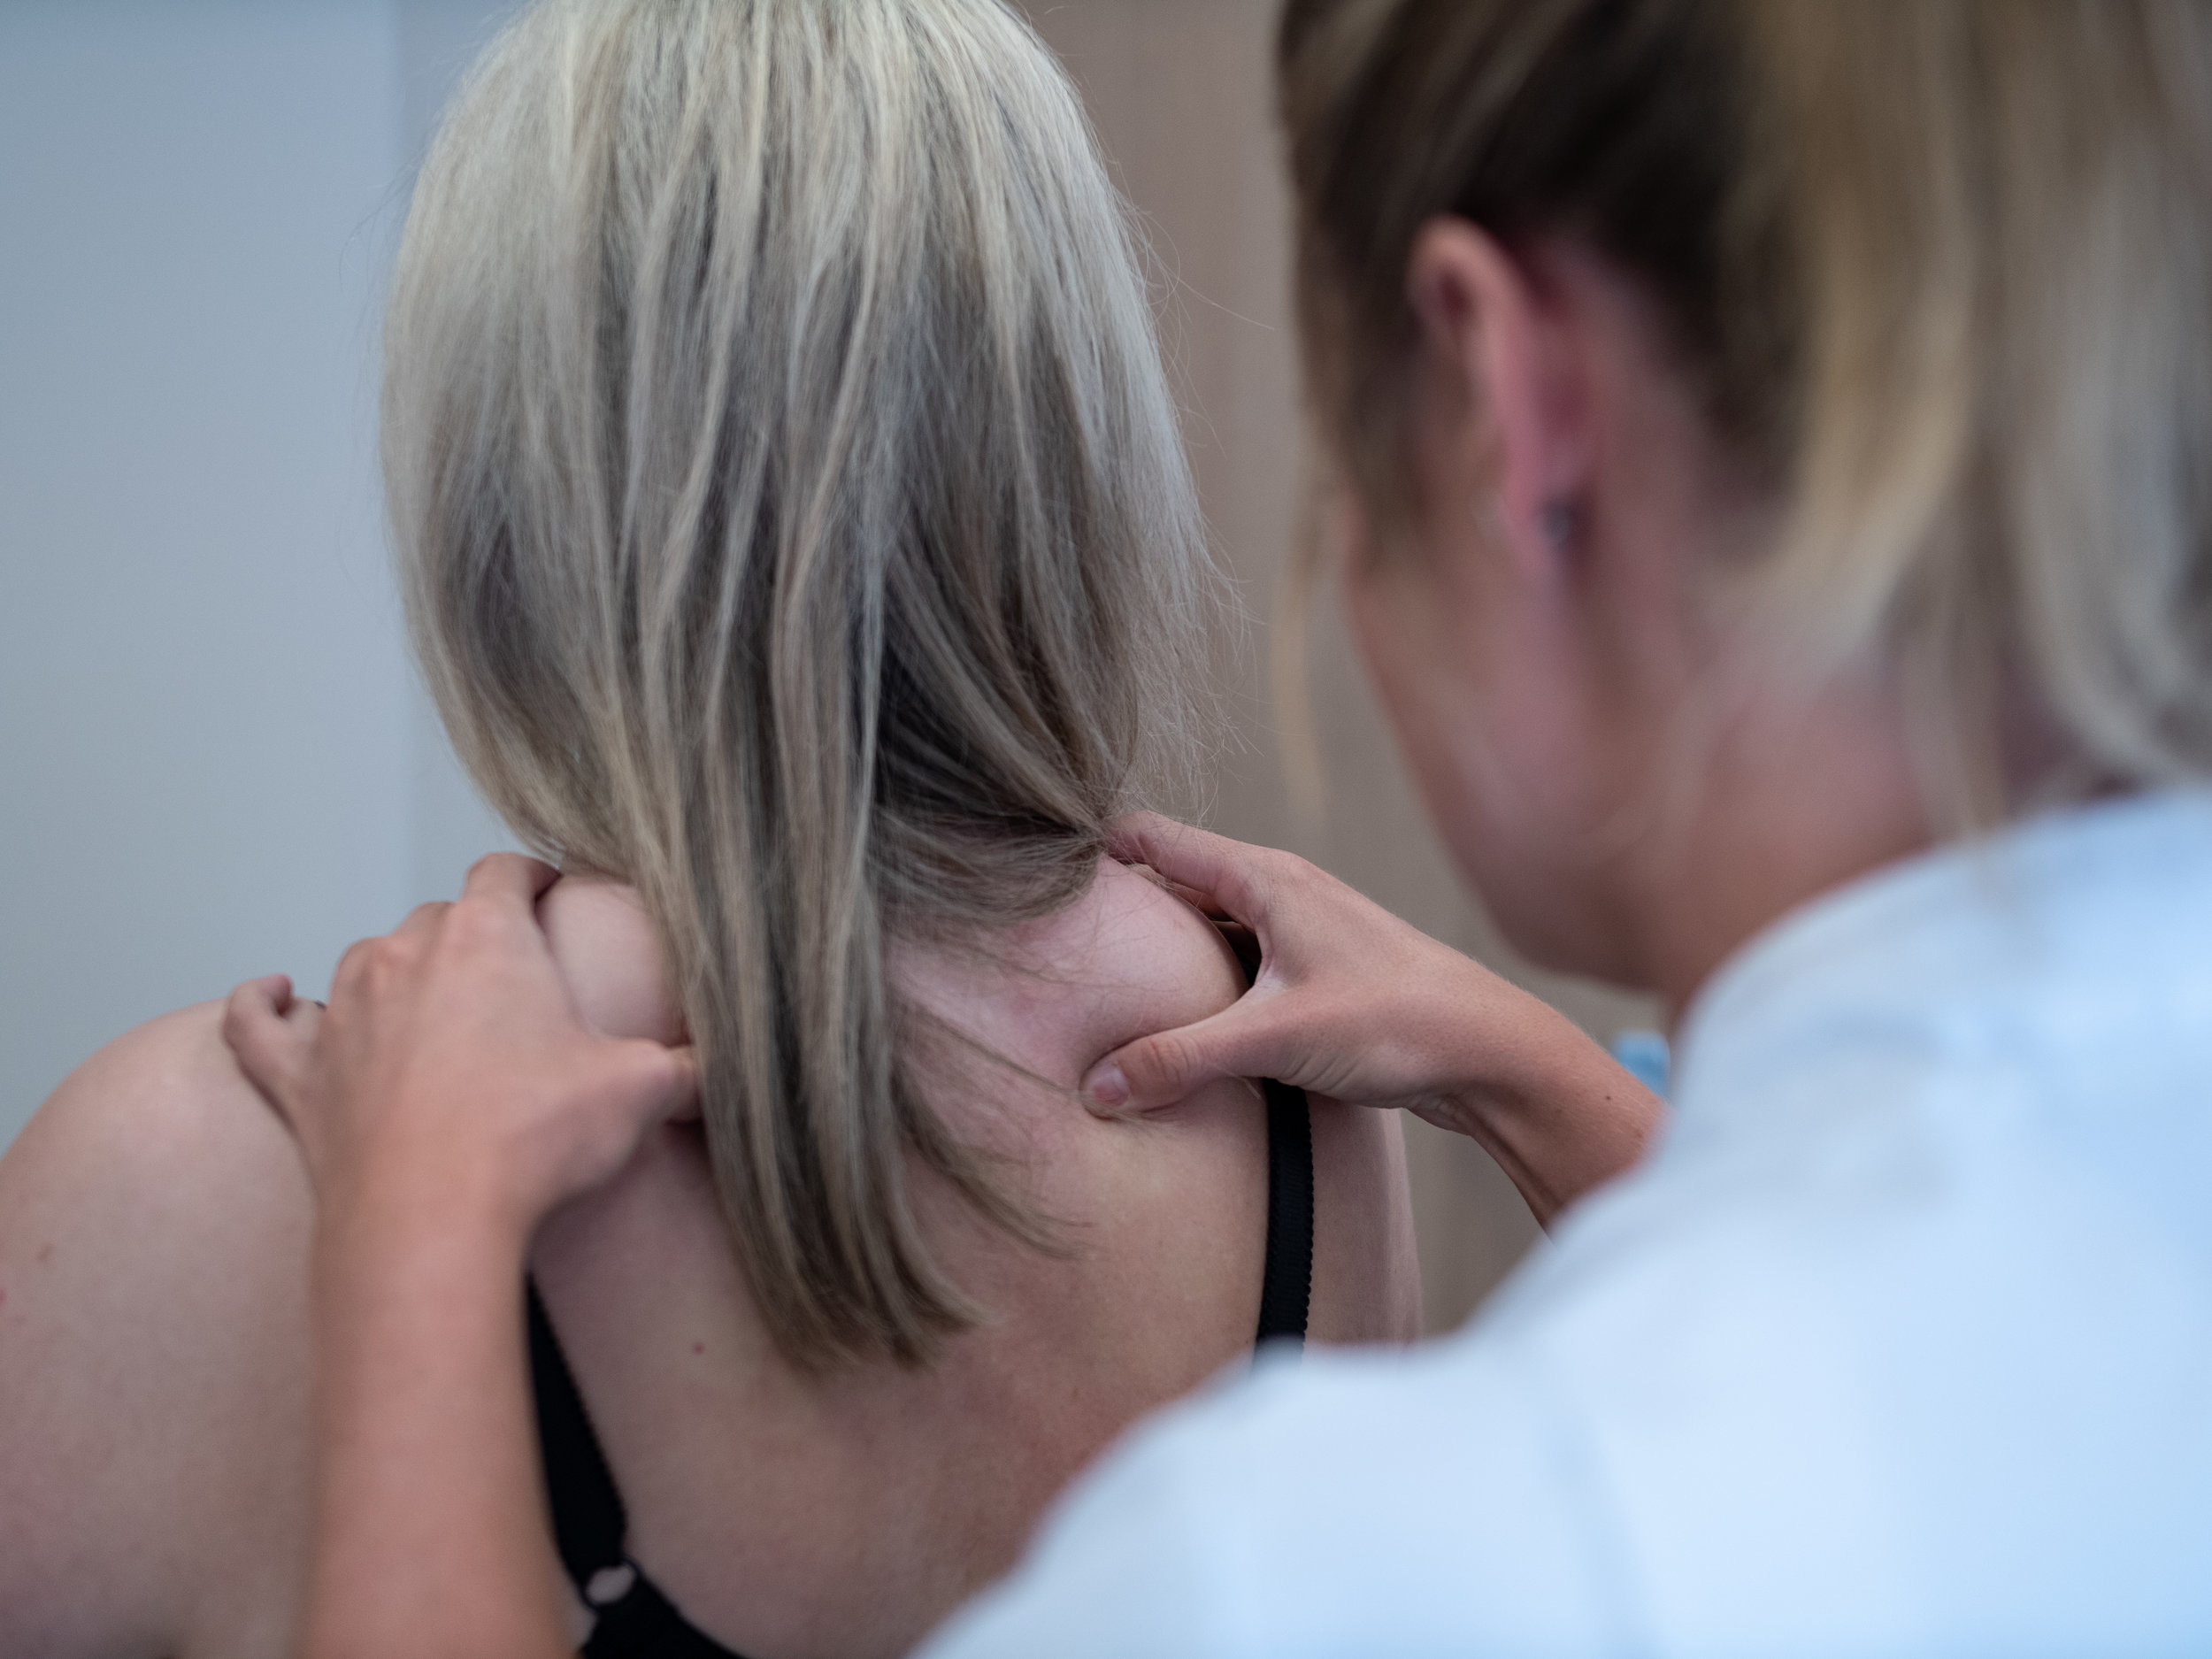 Treating Injuries & Conditions - Osteopathy treats a range of injuries and conditions, from acute injuries to chronic and long-term conditions and illnesses.The Village Osteopaths has had great success in helping patients return to their daily lives after suffering from debilitating pain.